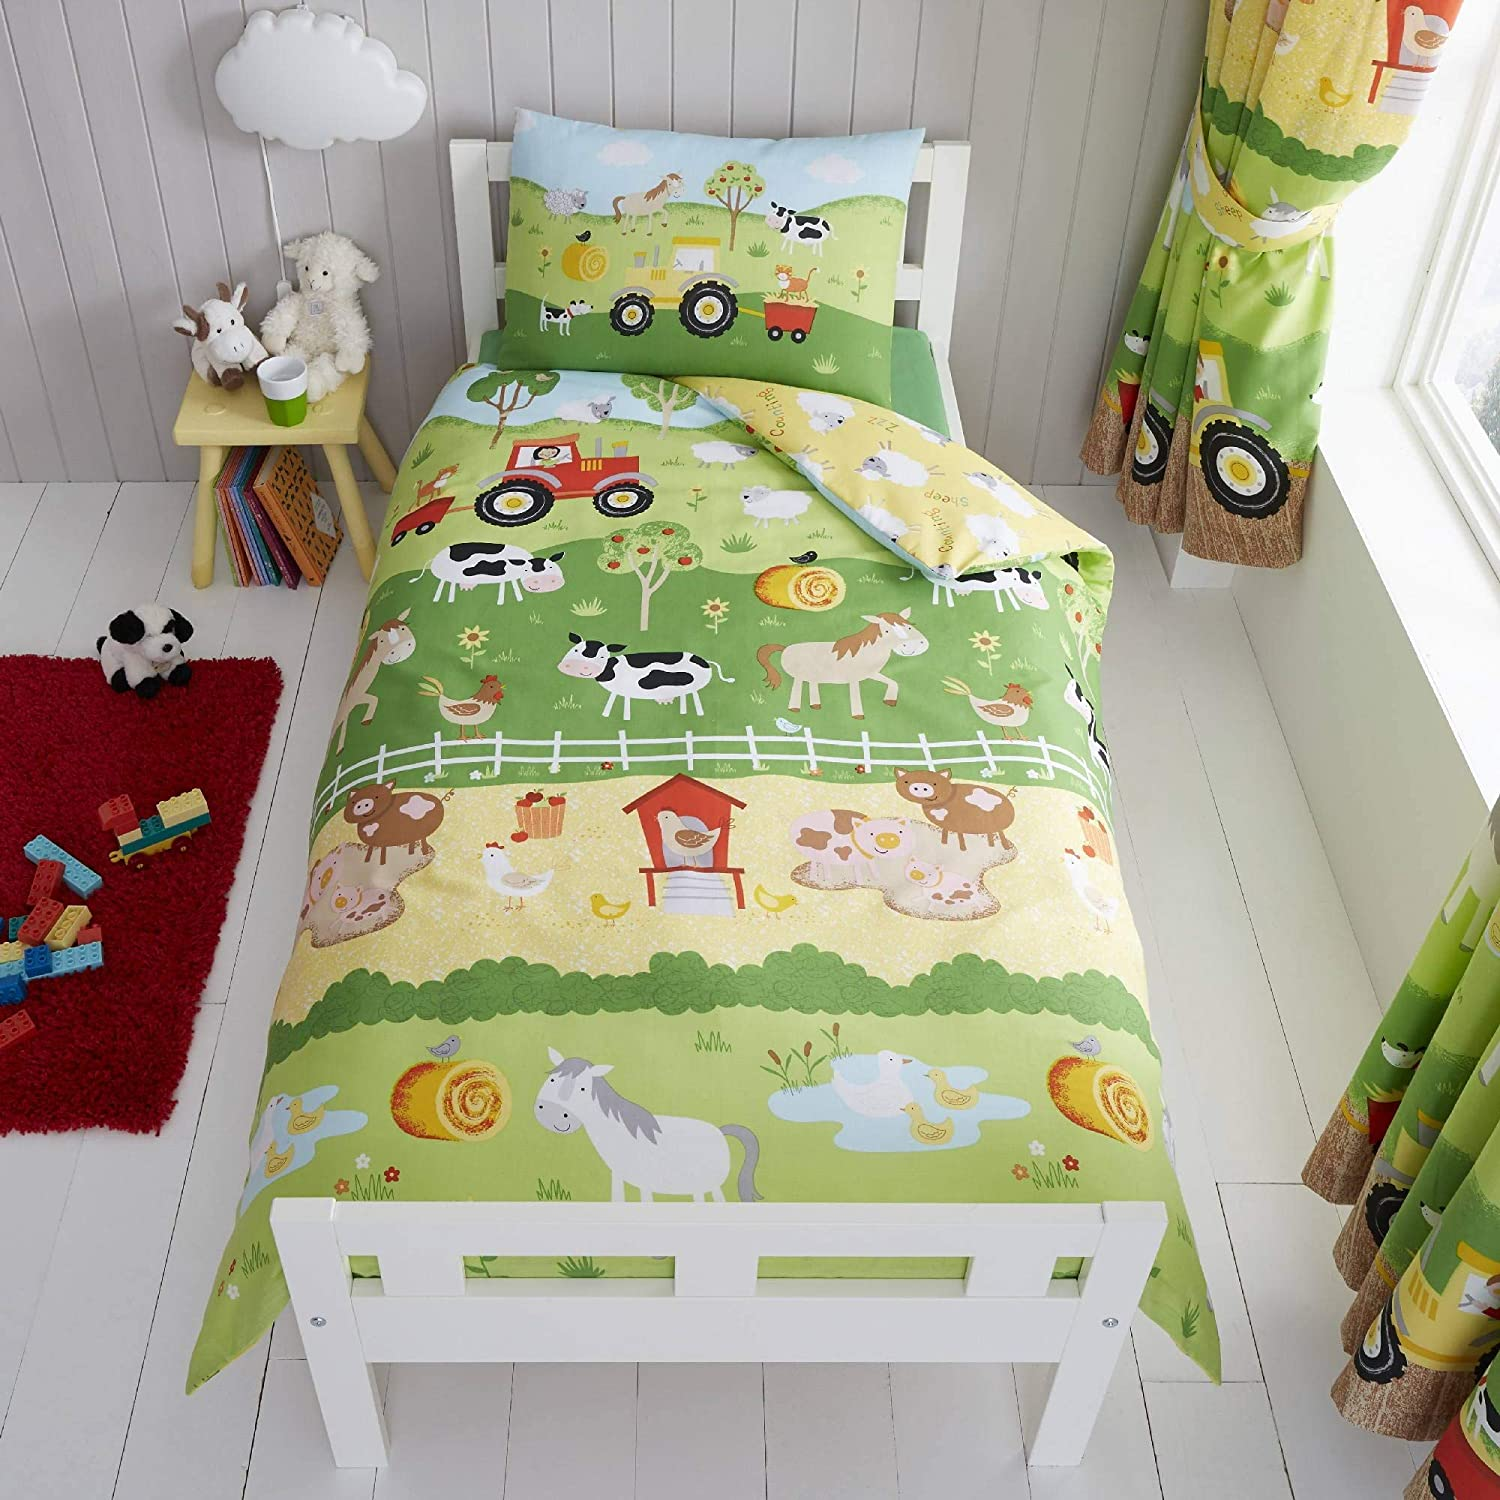 Happy Linen Company Childrens Boys Girls Farm Animals Counting Sheep Green Yellow Reversible UK Toddler Bedding Duvet Cover Set